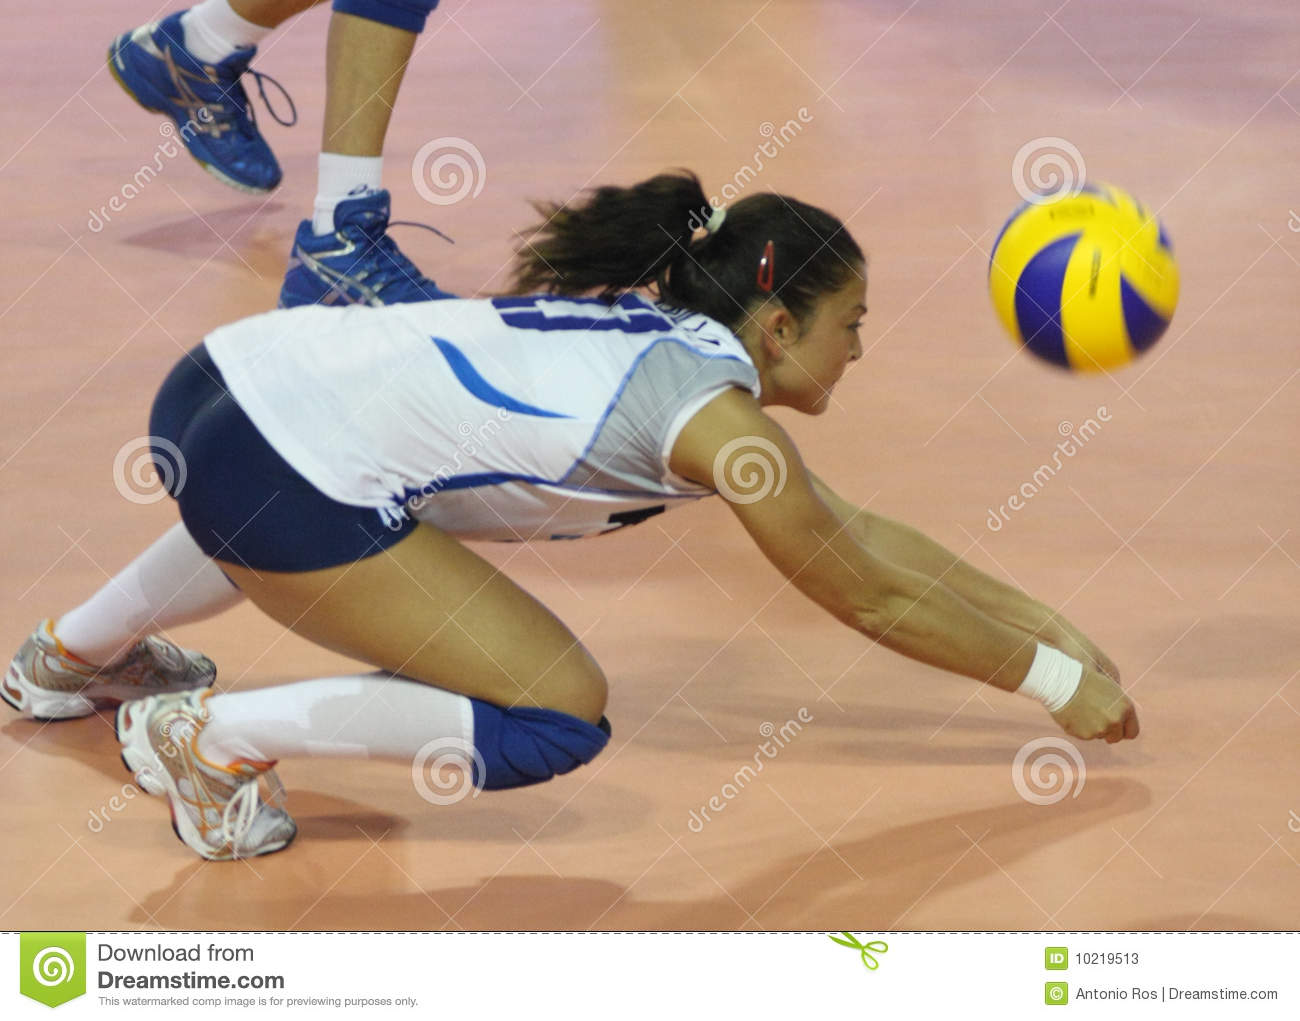 Download FIVB WOMEN'S VOLLEYBALL CHAMPIONSHIP - ITALY Editorial Stock Photo - Image of paola, ball: 10219513